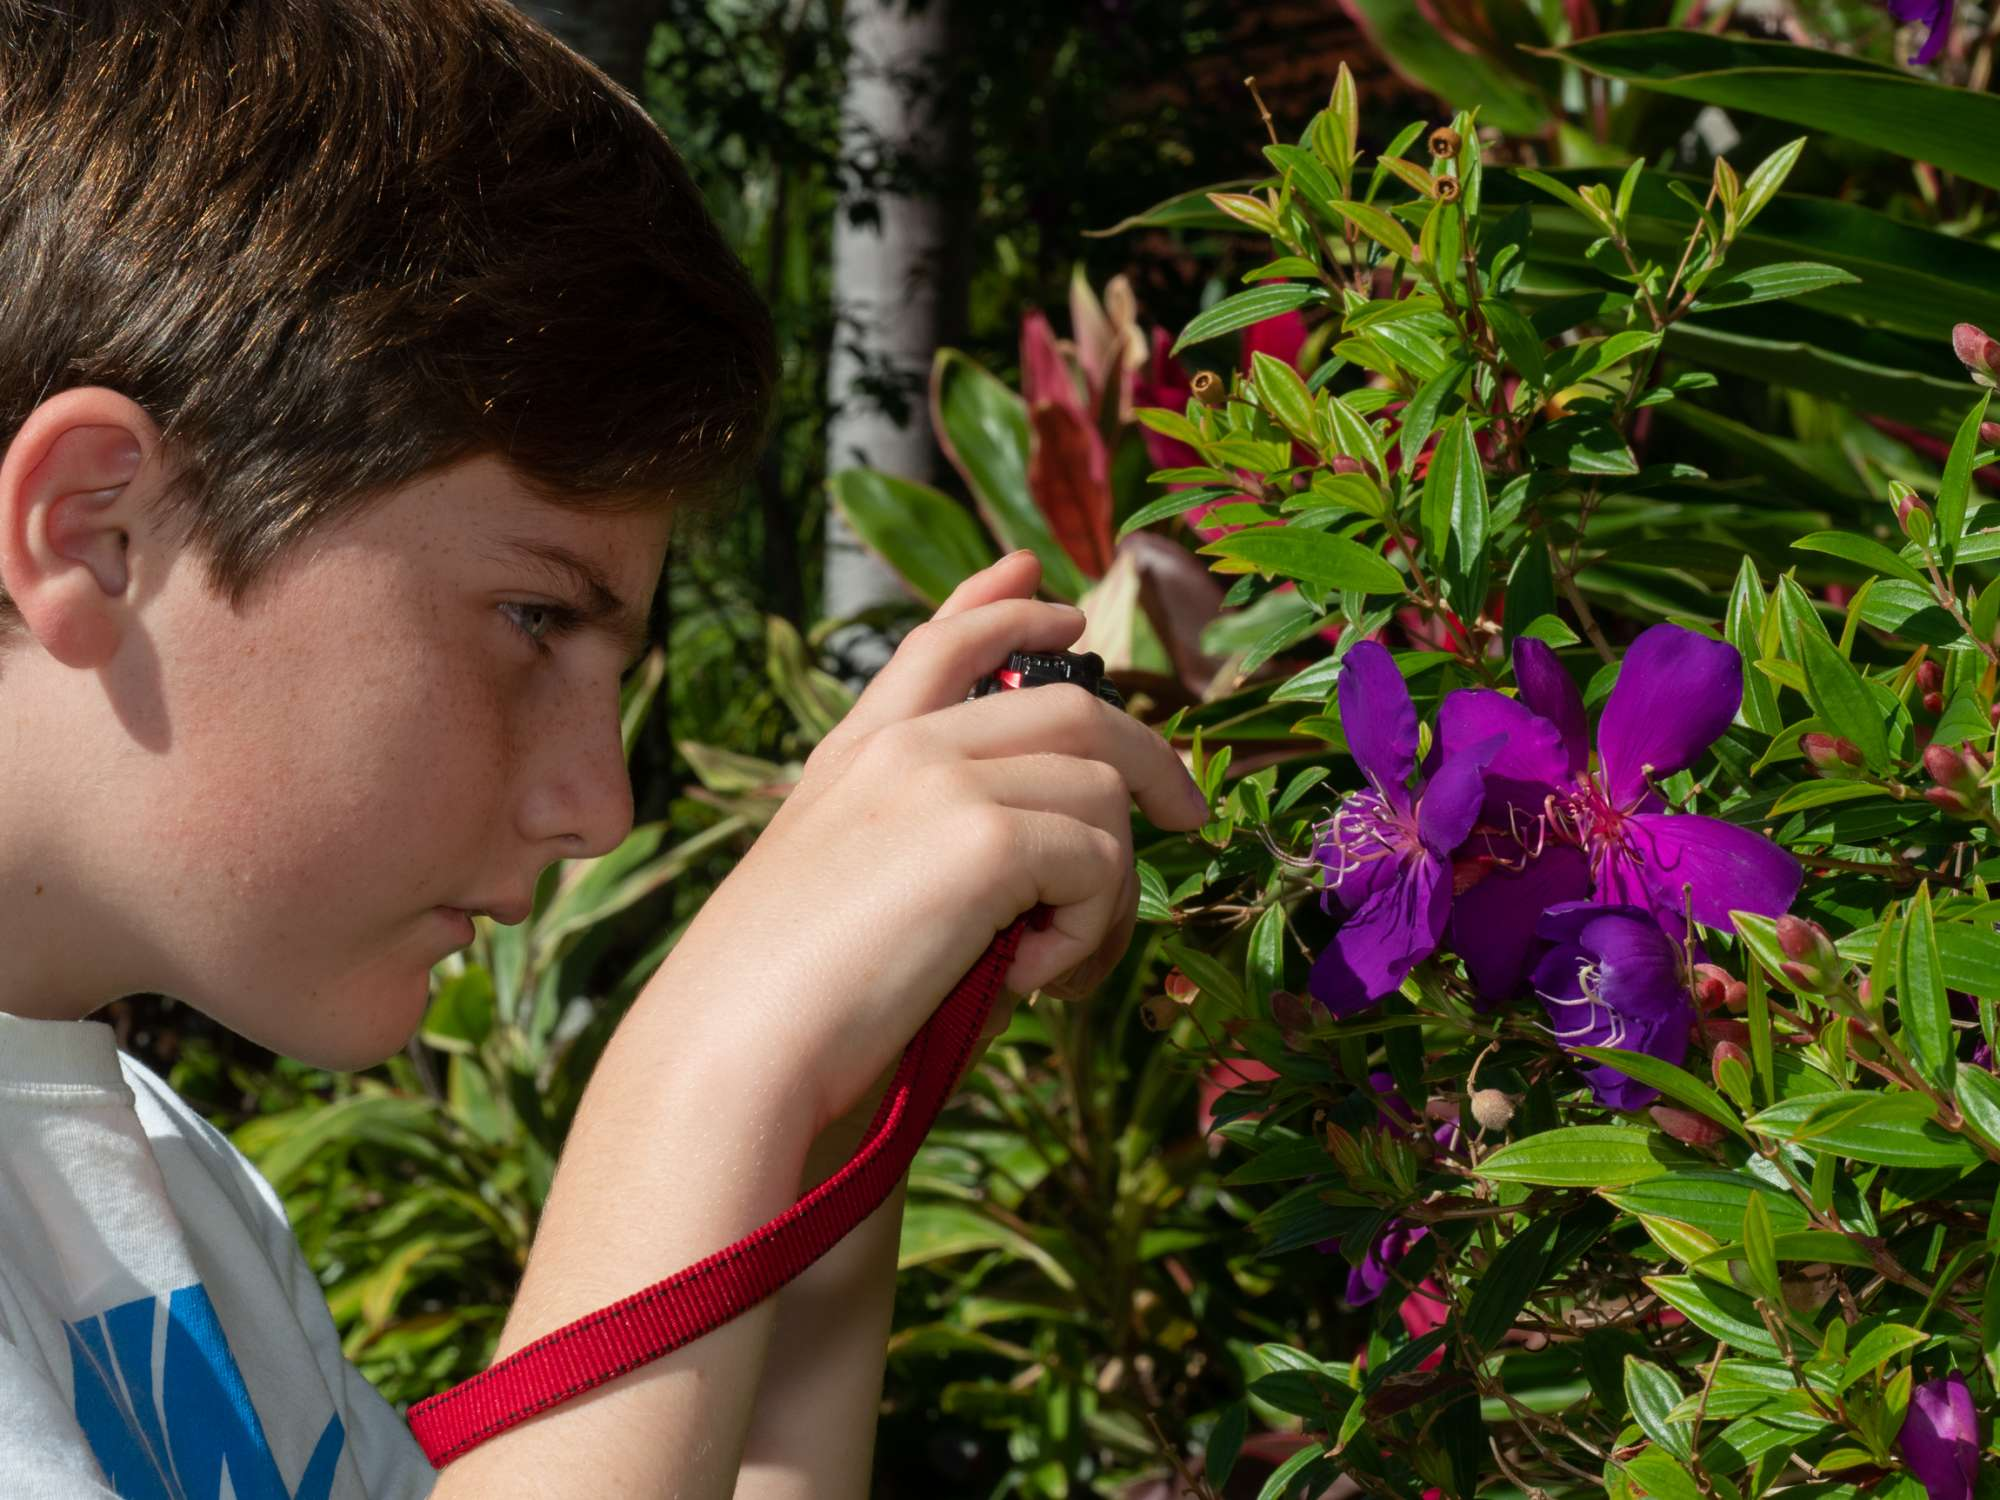 Little buggers Boy using camera to take closeup photo of some purple flowers